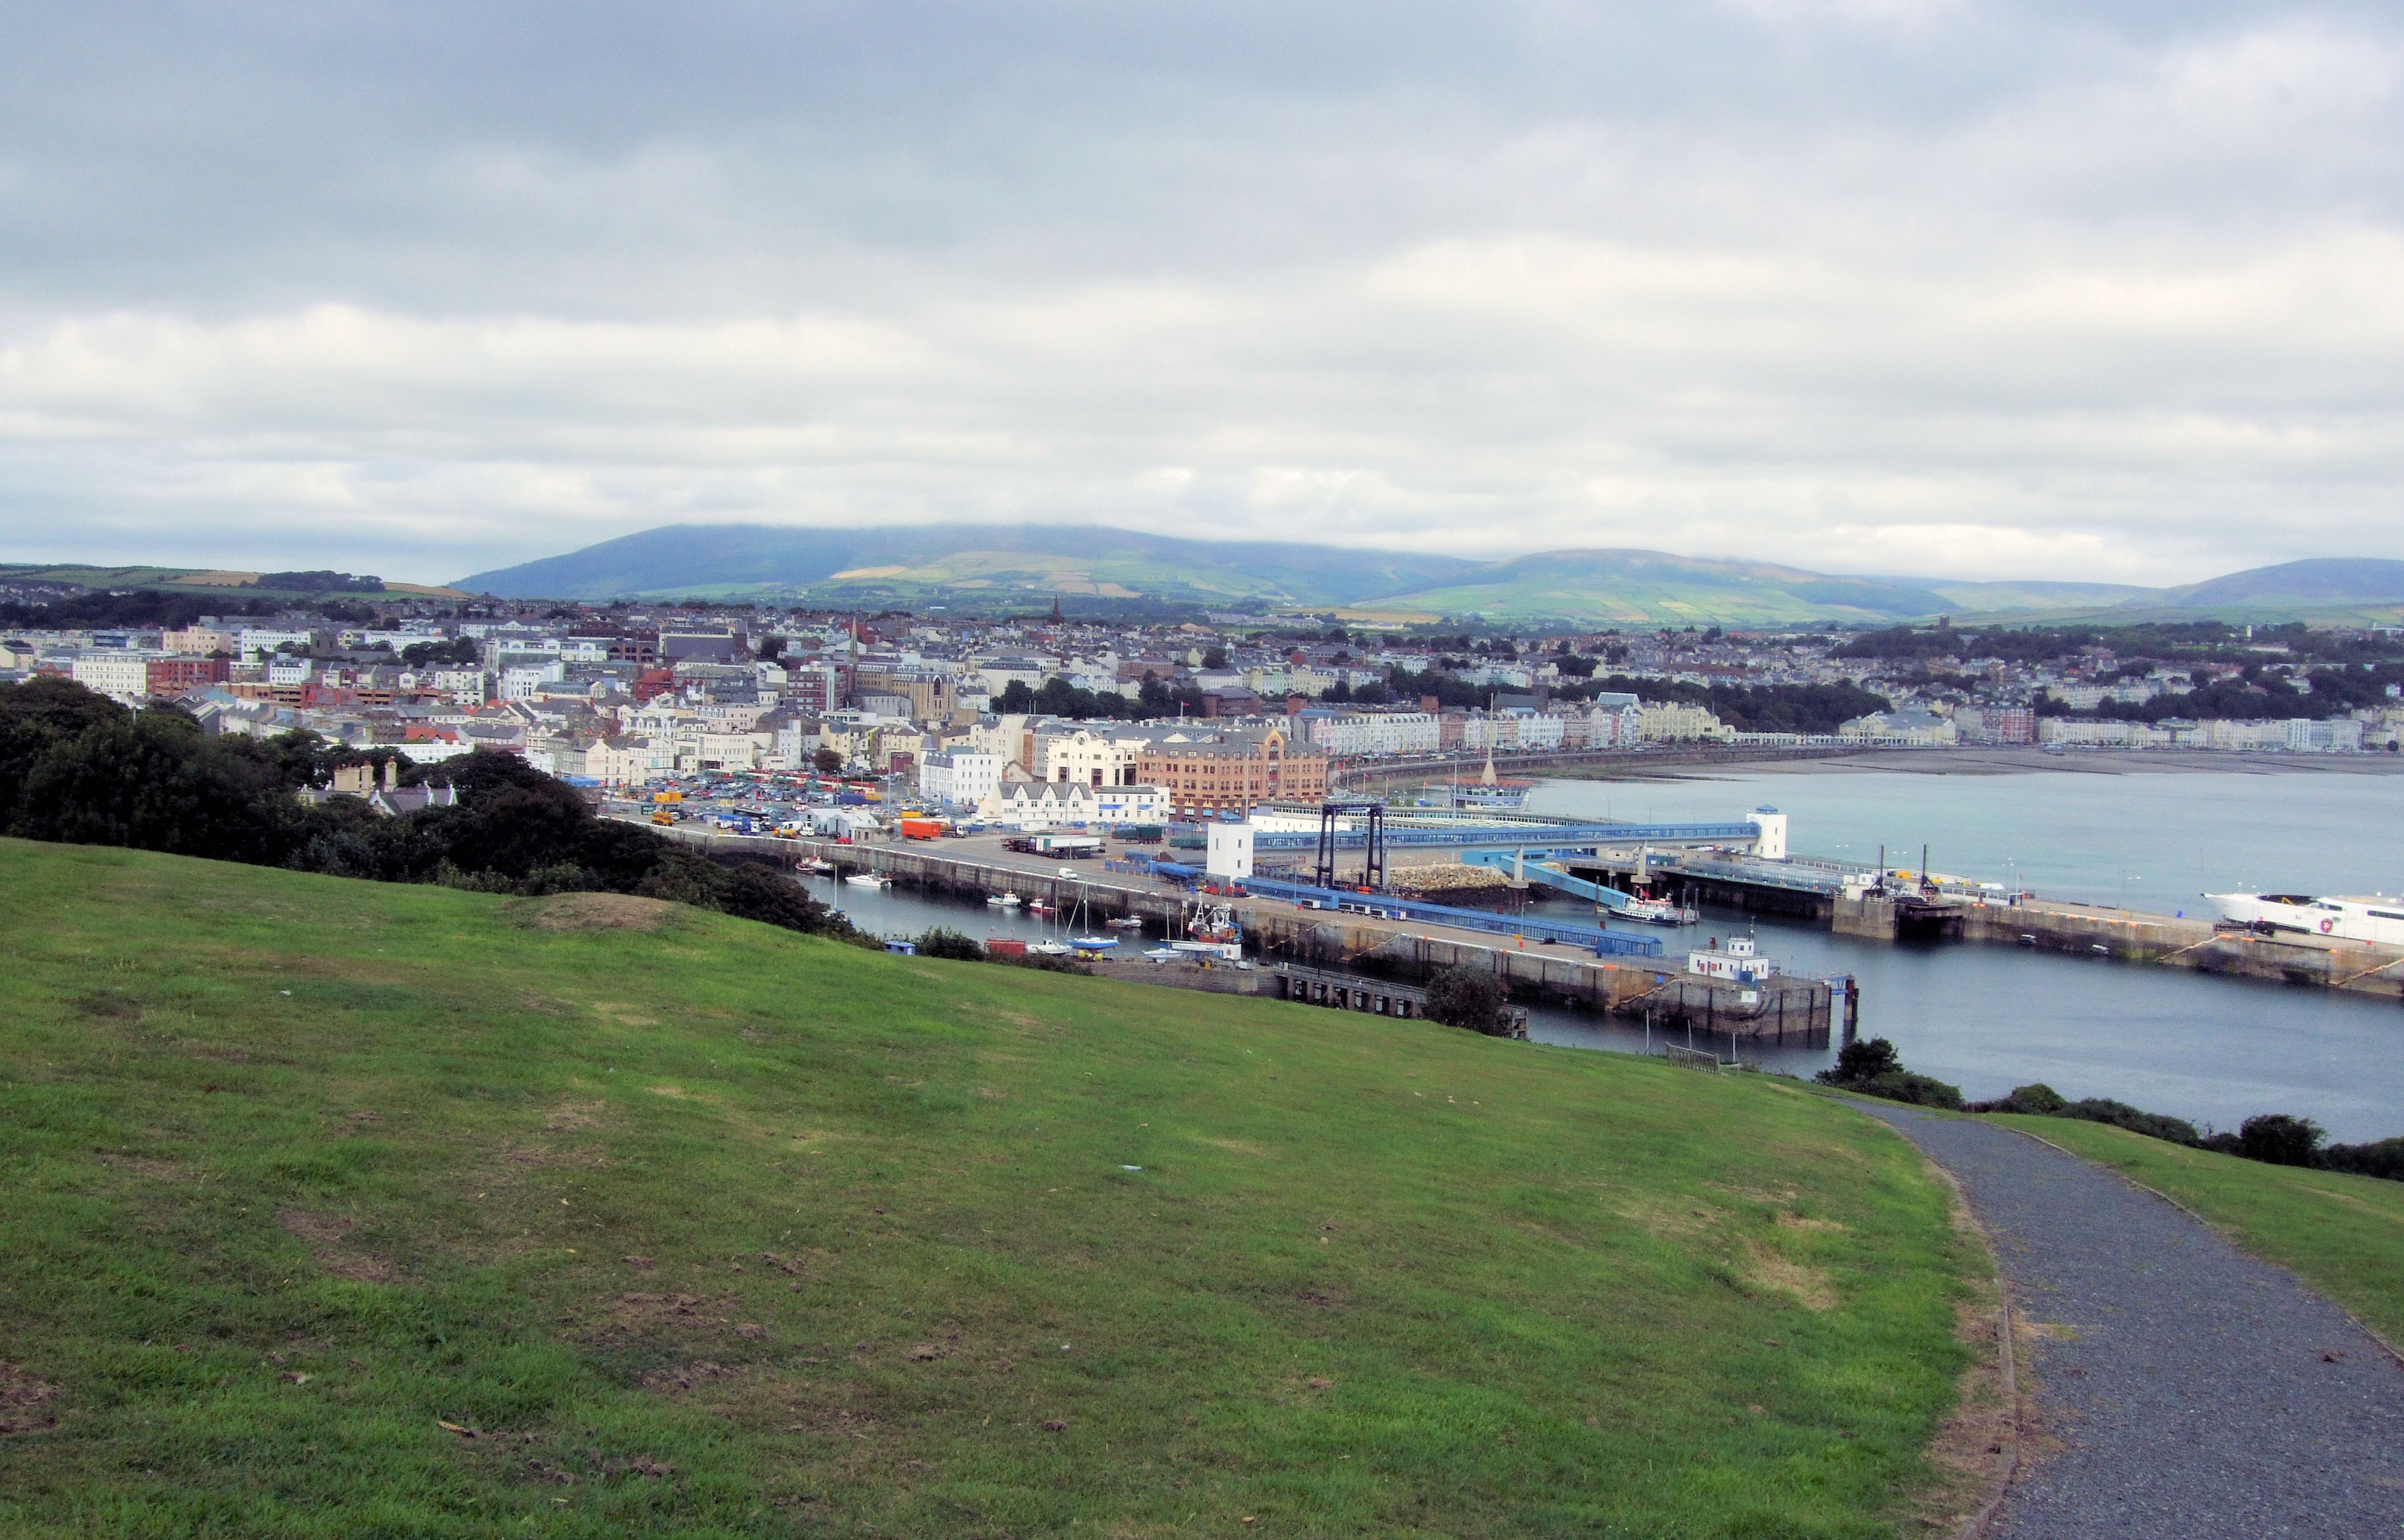 The view from Douglas Head, Isle of Man, towards the harbor with the ferry terminal of the Isle of Man Steam Packet Company in the center. Photo taken on August 11, 2009.